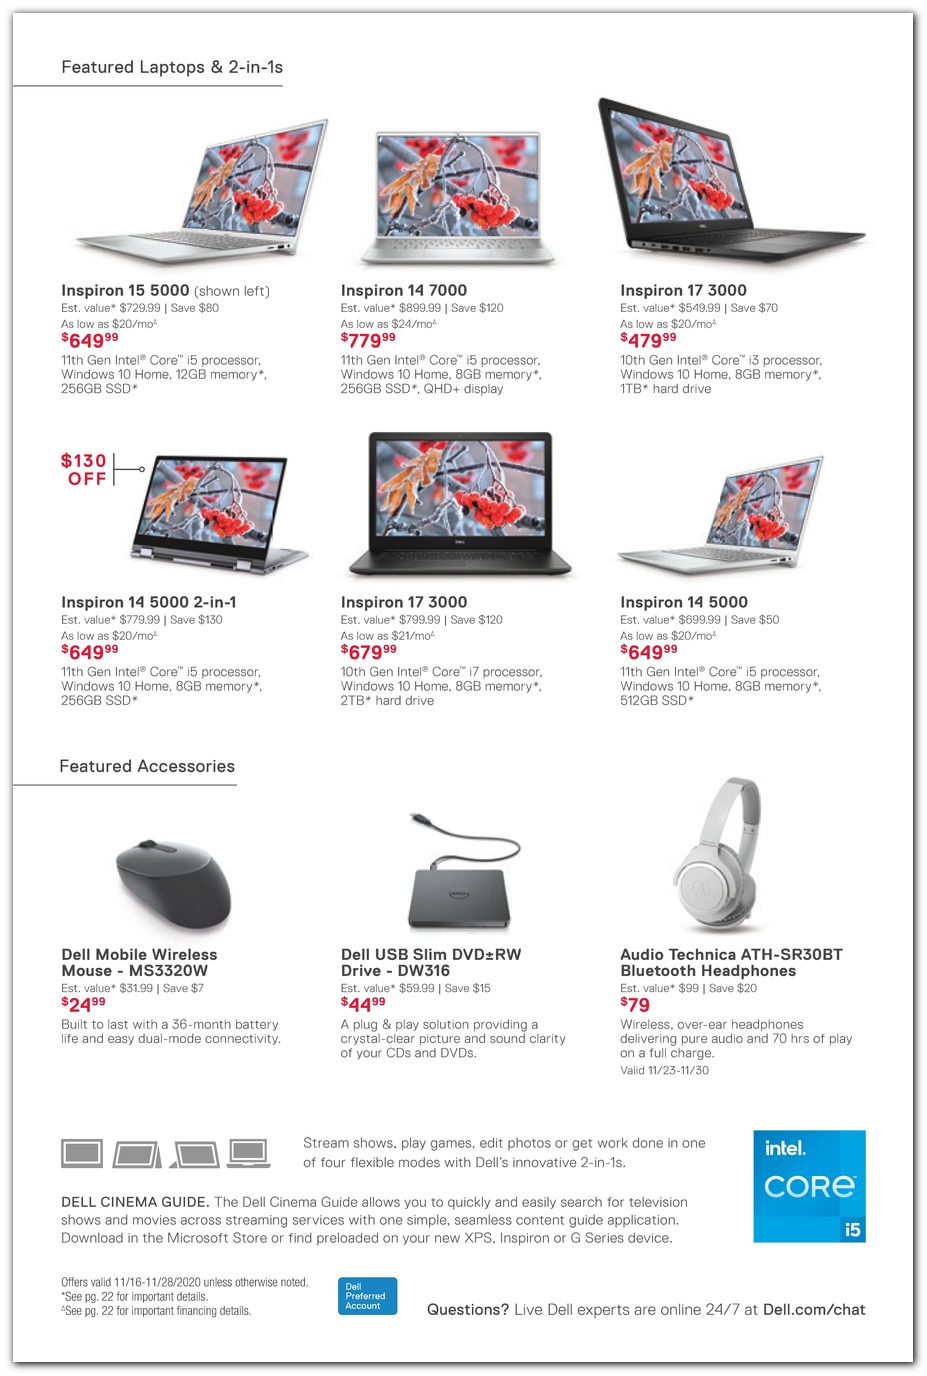 Inspiron Laptops / Mouse / Headphones